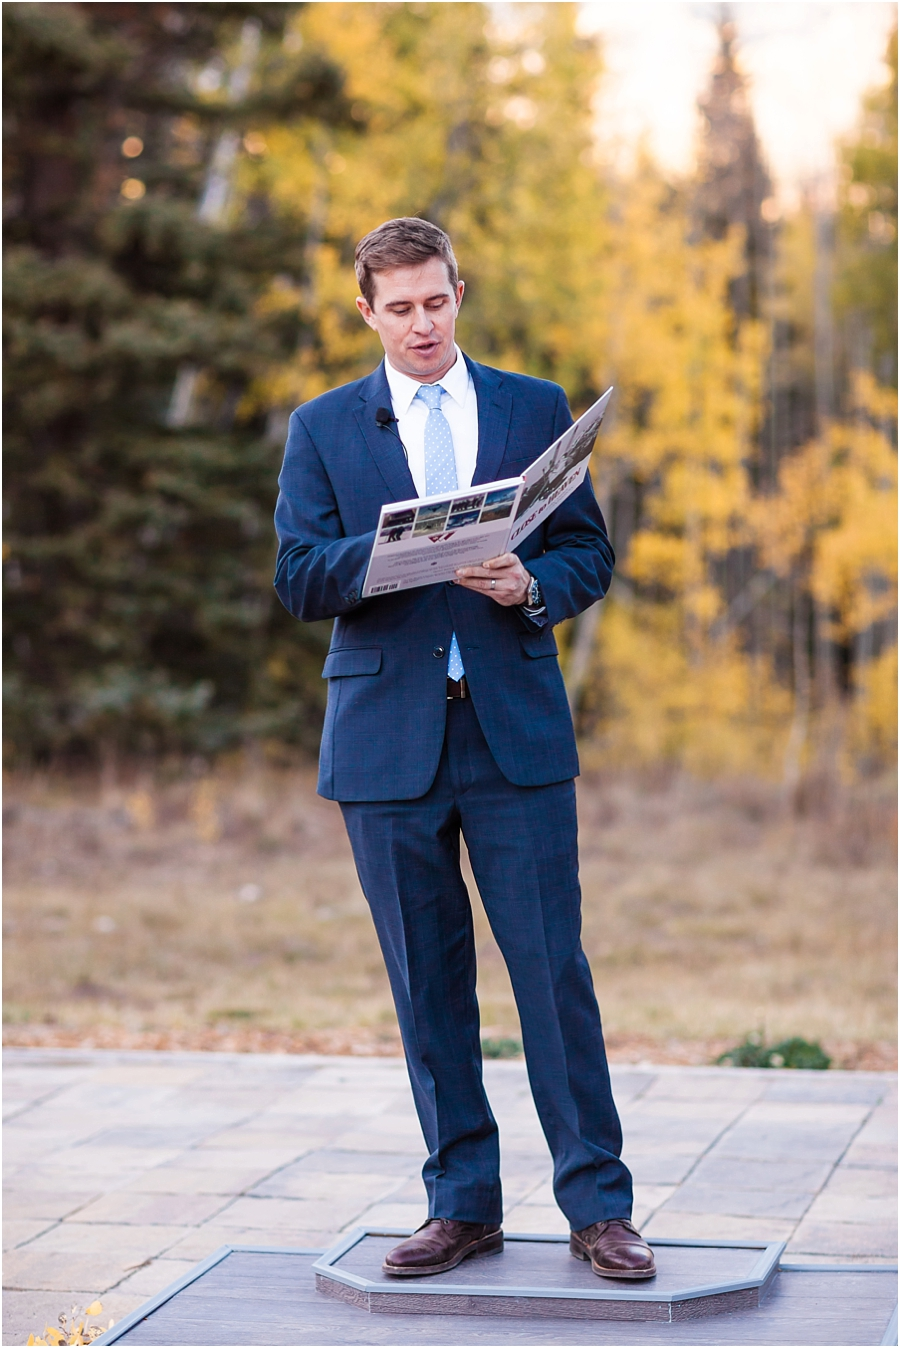 durango-wedding-officiant.jpg